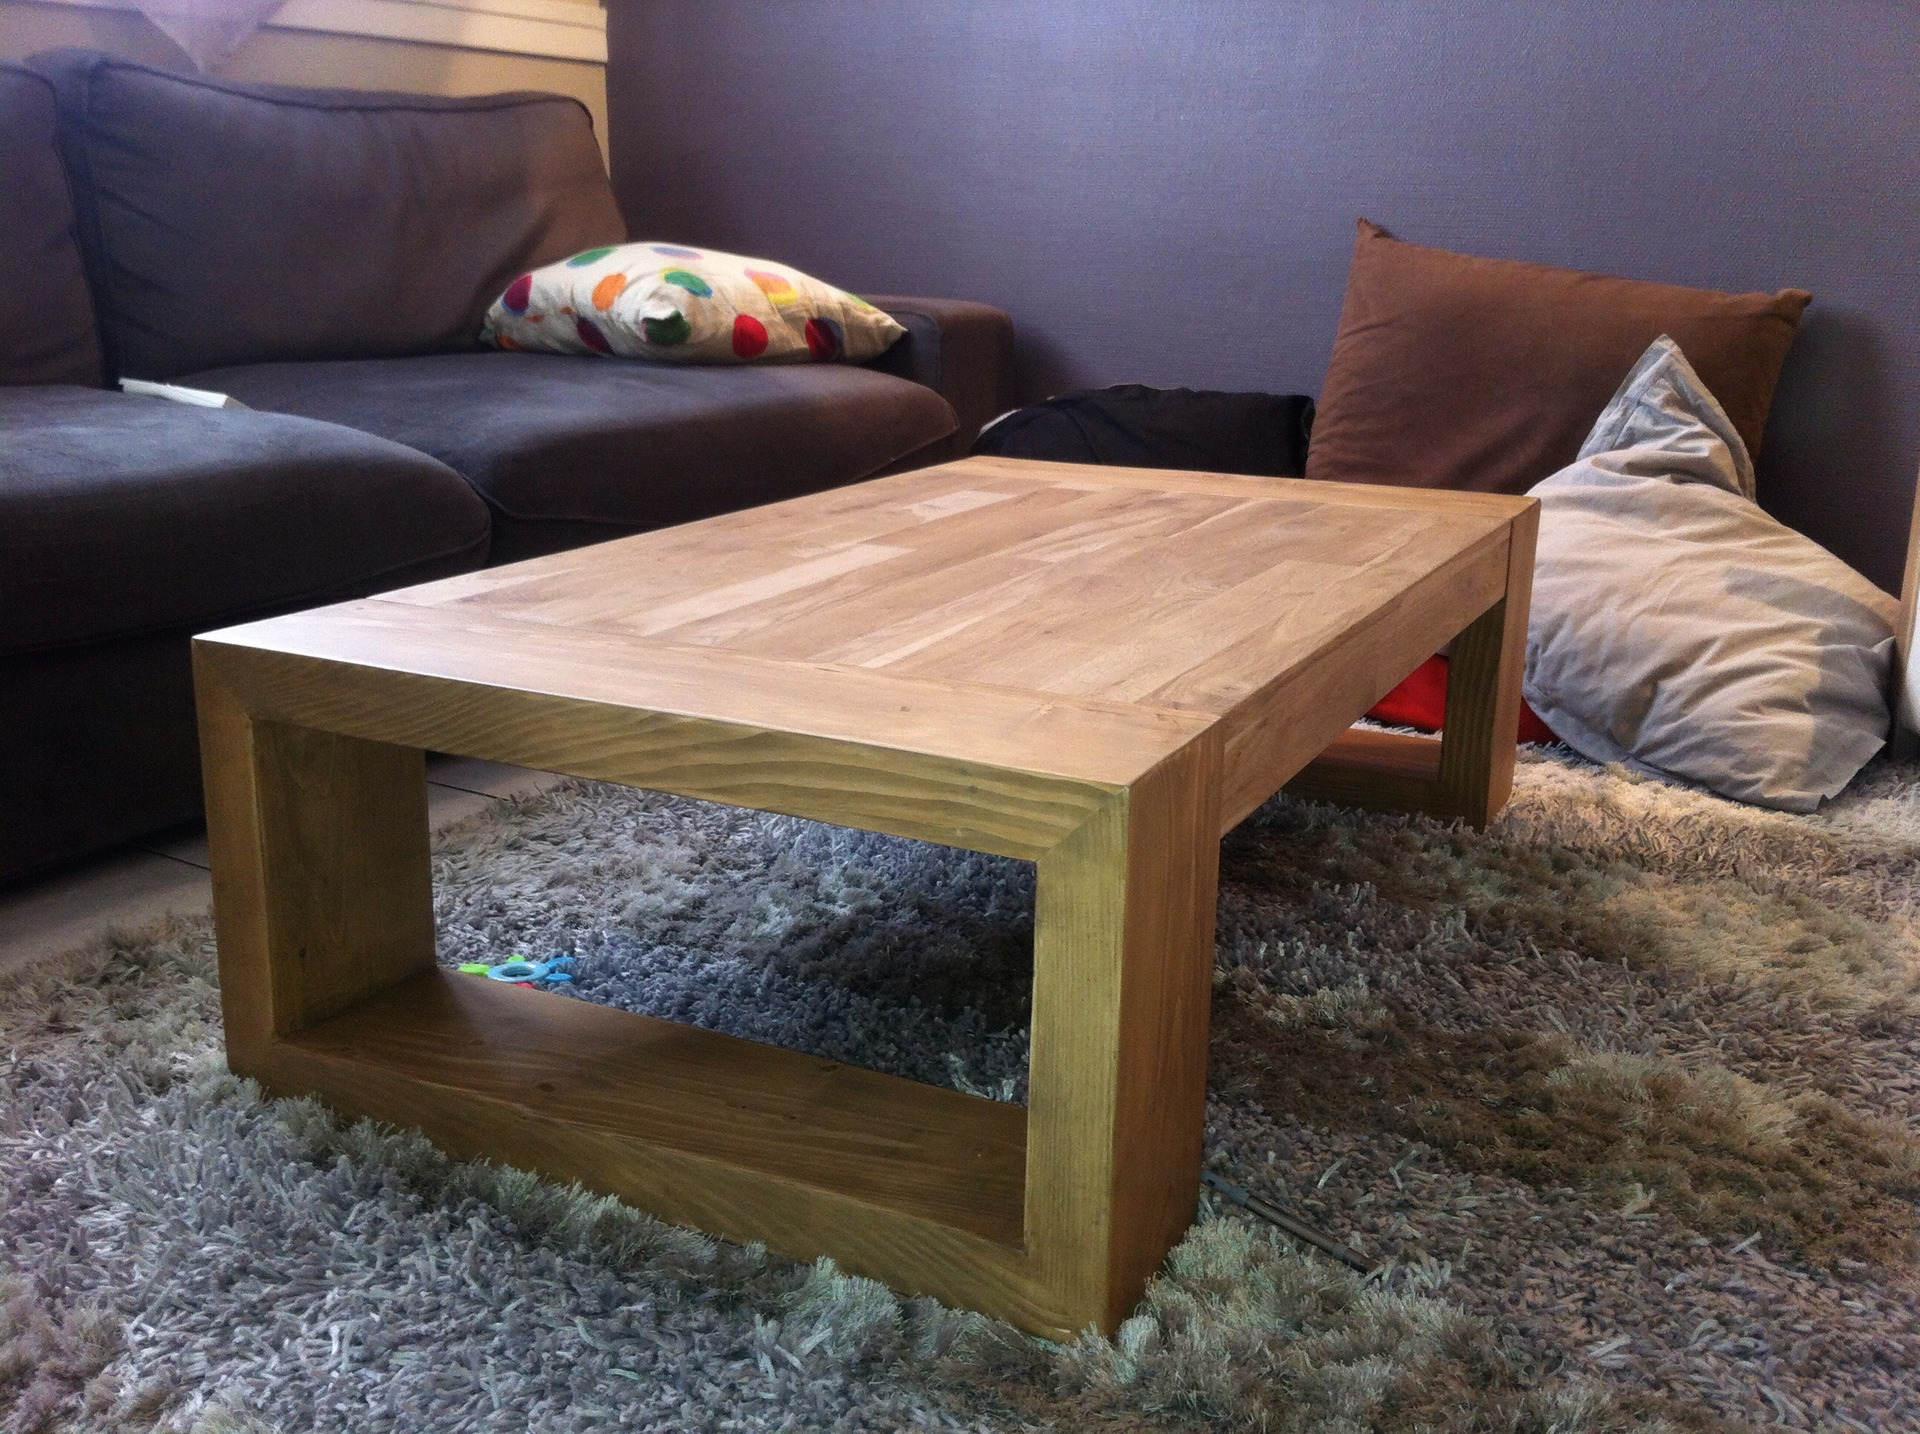 Table Basse Design En Bois Brut Atwebsterfr Maison Et Mobilier